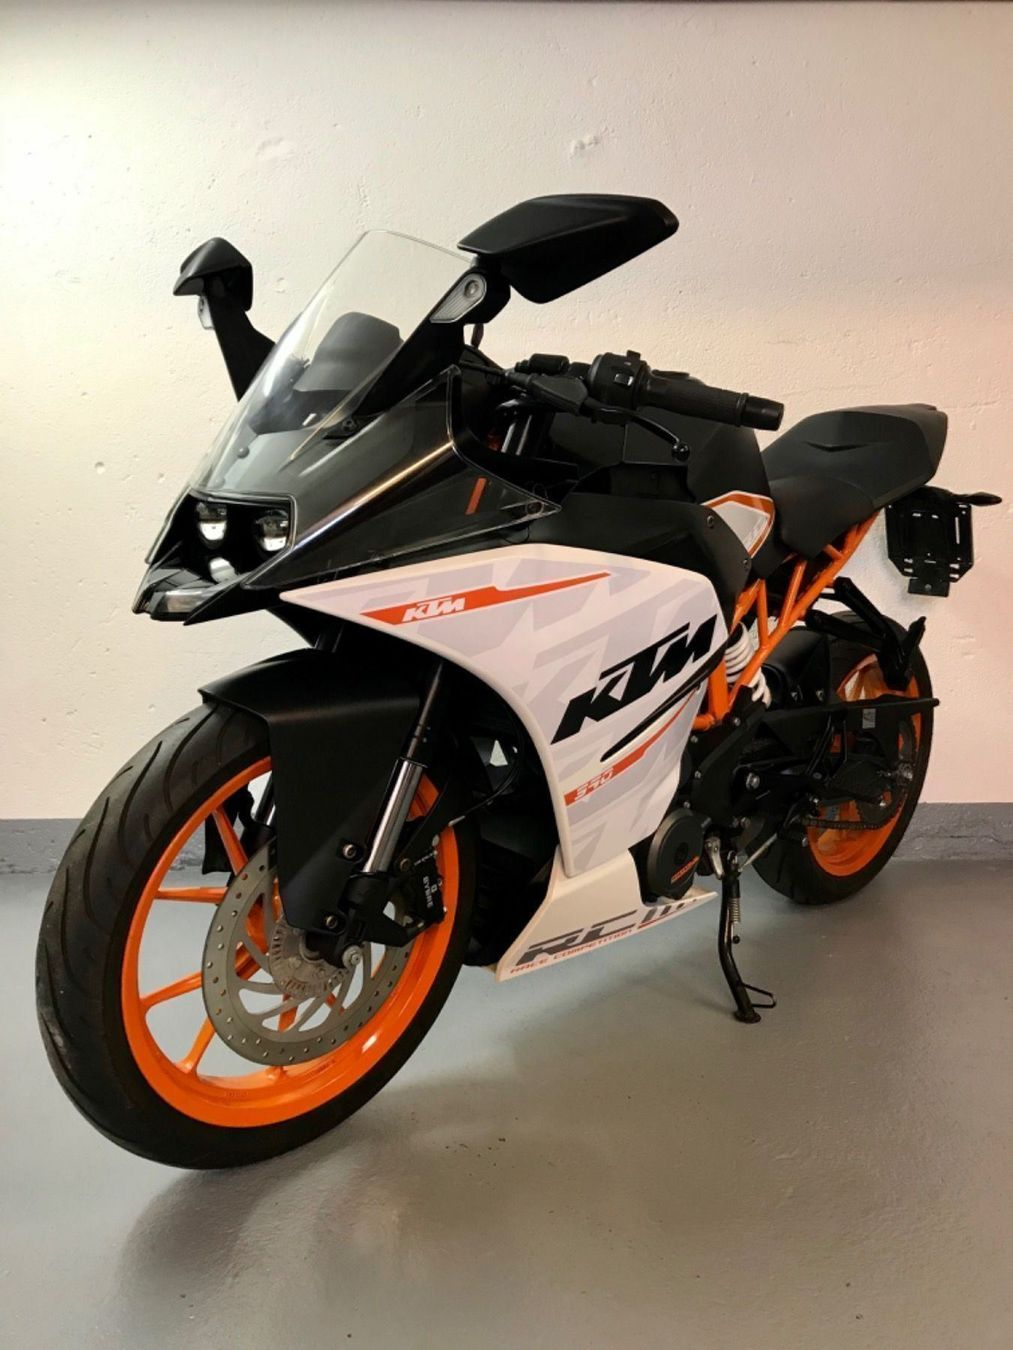 KTM RC 390 ABS Supersport